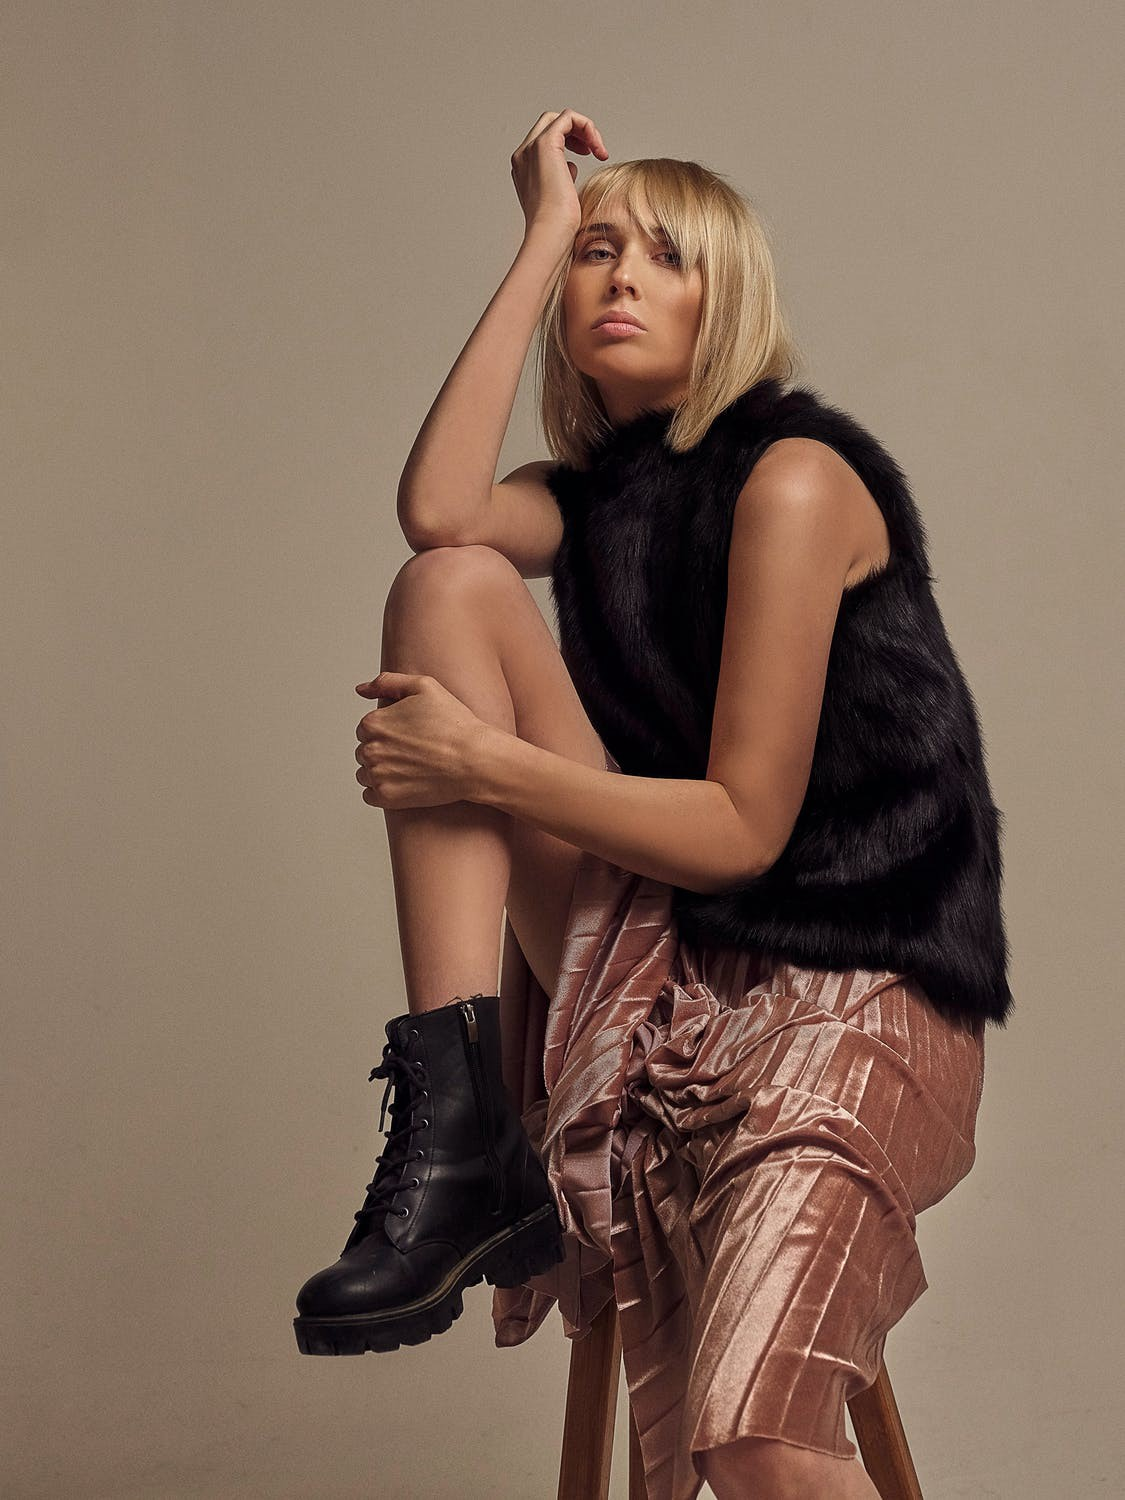 A model wearing a furry black top, glossy skirt, and a pair of black ankle boots